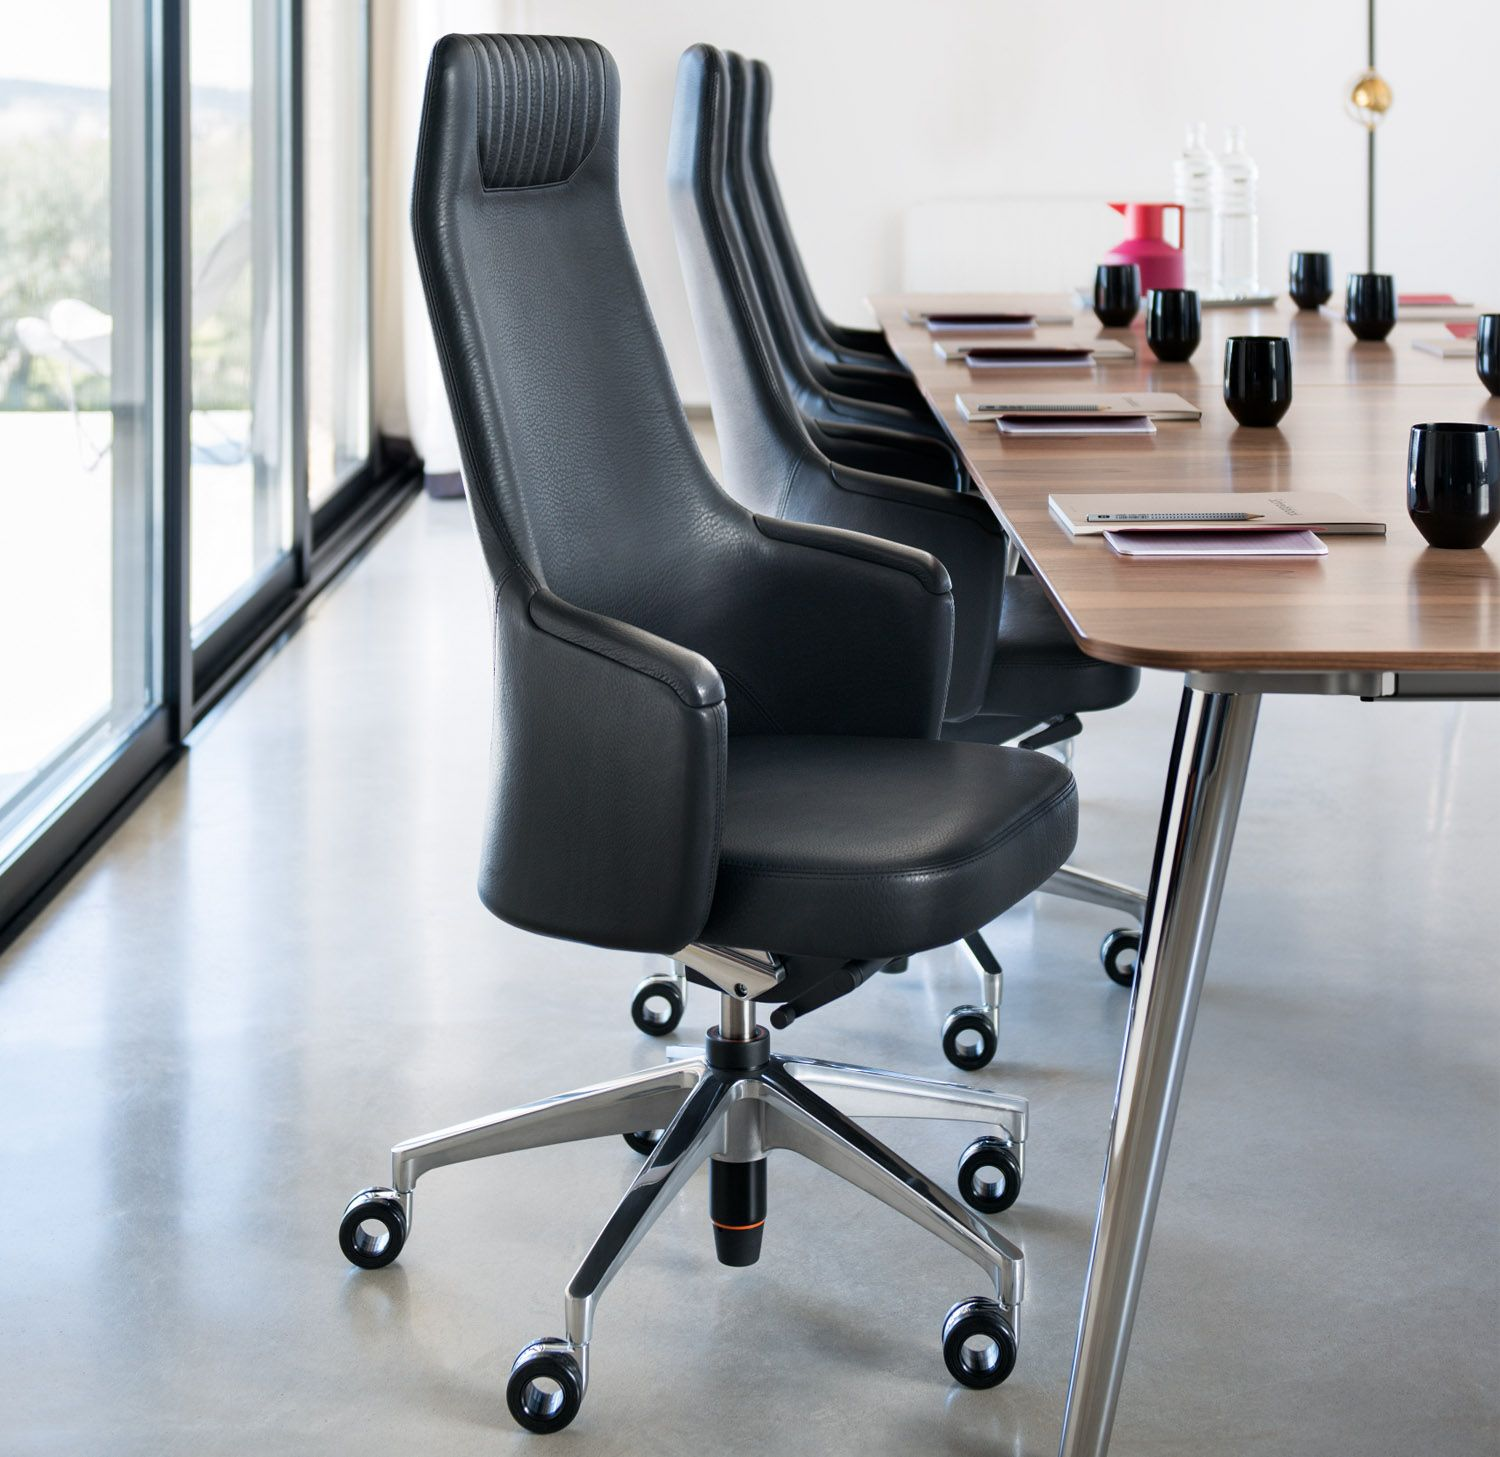 Silent Rush Executive Chair is a top level management